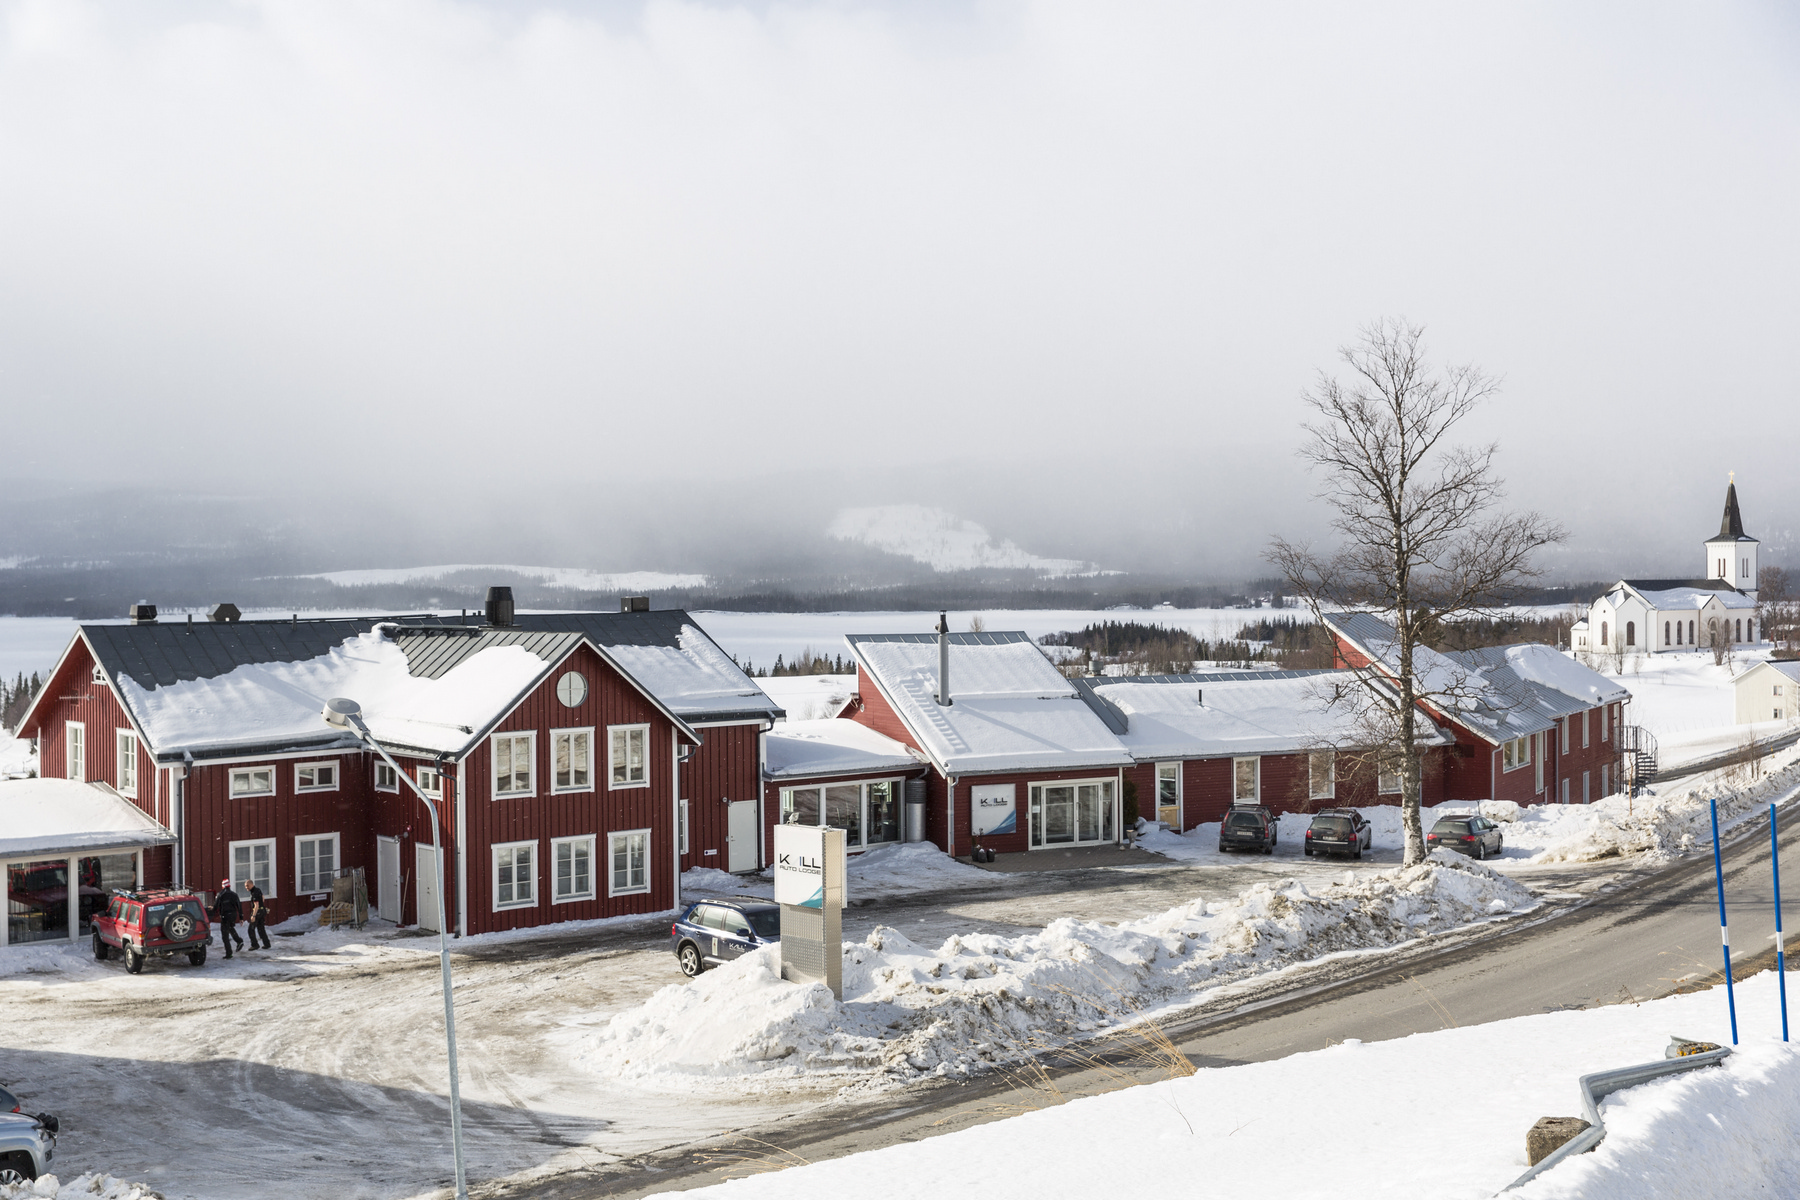 por un Venta en Extraordinary property situated in glorious nature Kall Other Sweden, Other Areas In Sweden, 83005 Suecia